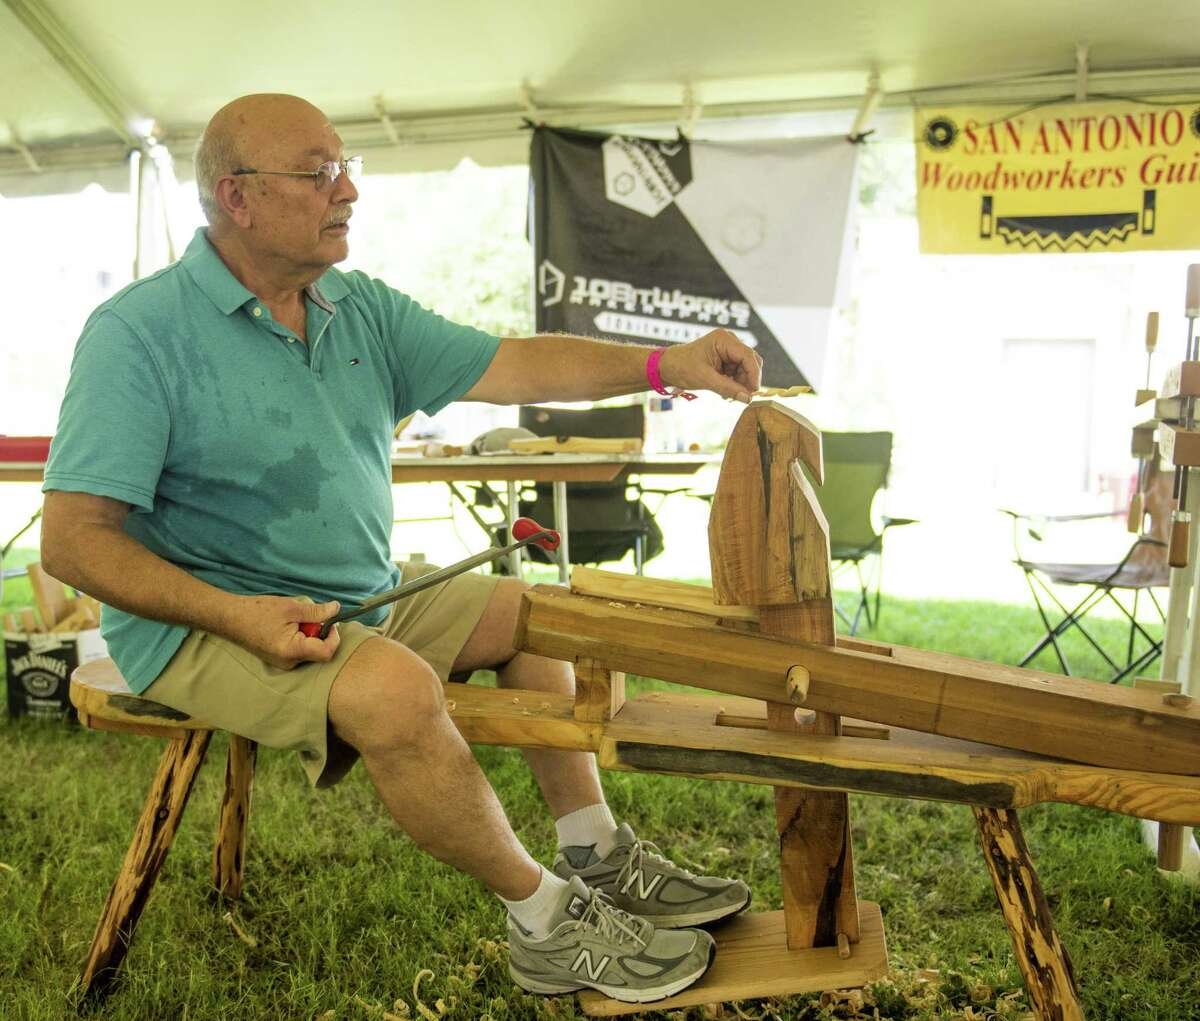 Woodworkers' Guild member Jesse Jenkins demonstrates woodworking techniques during the 48th Texas Folklife Festival on Sunday, June 9, 2019 at the UTSA Institute of Texan Cultures.